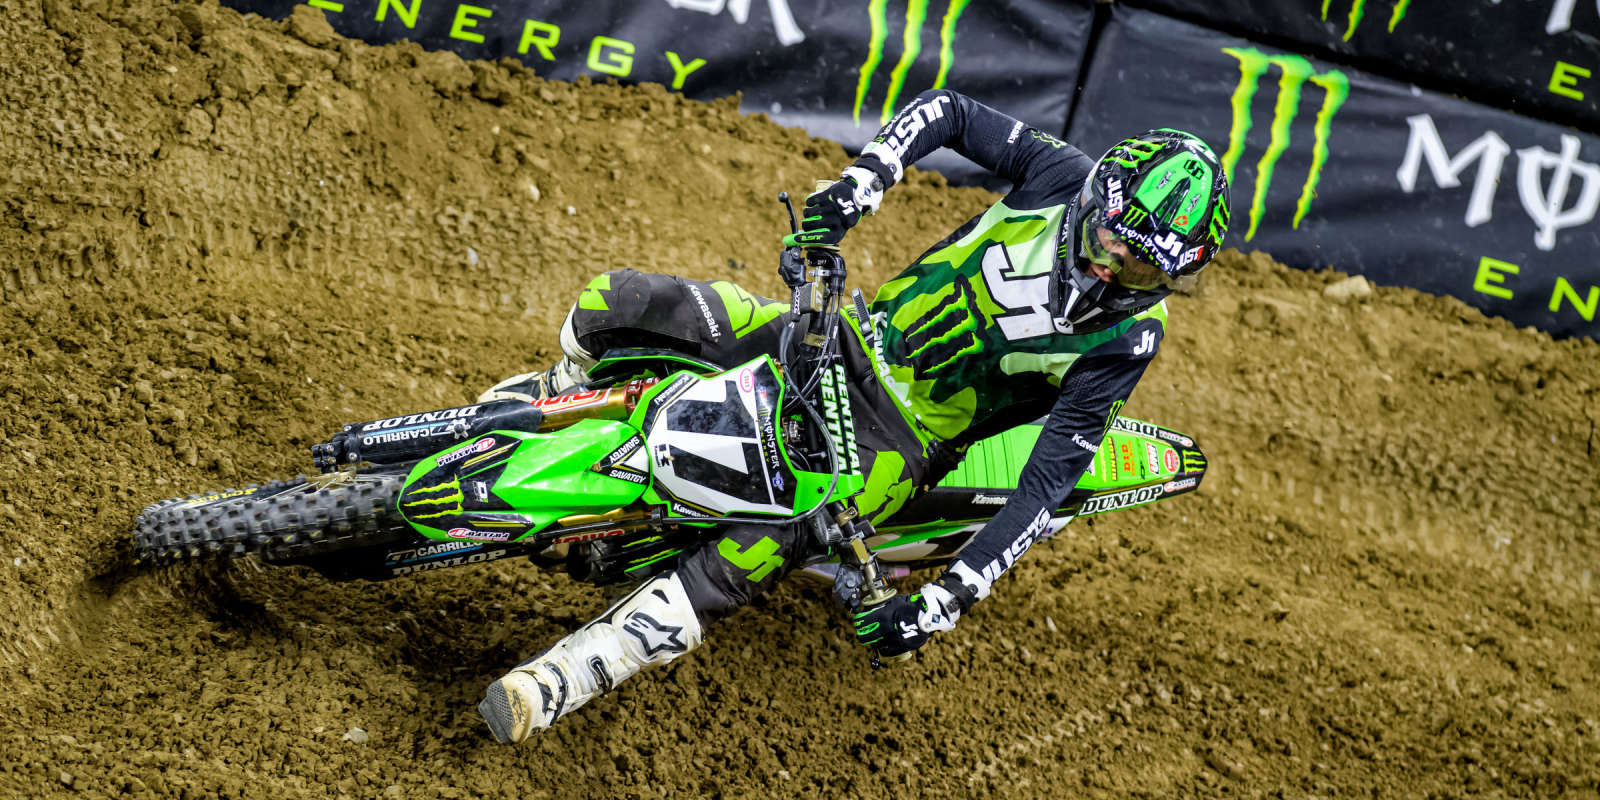 Another fantastic night of racing took place on Saturday at round eight of Monster Energy AMA Supercross in Detroit.